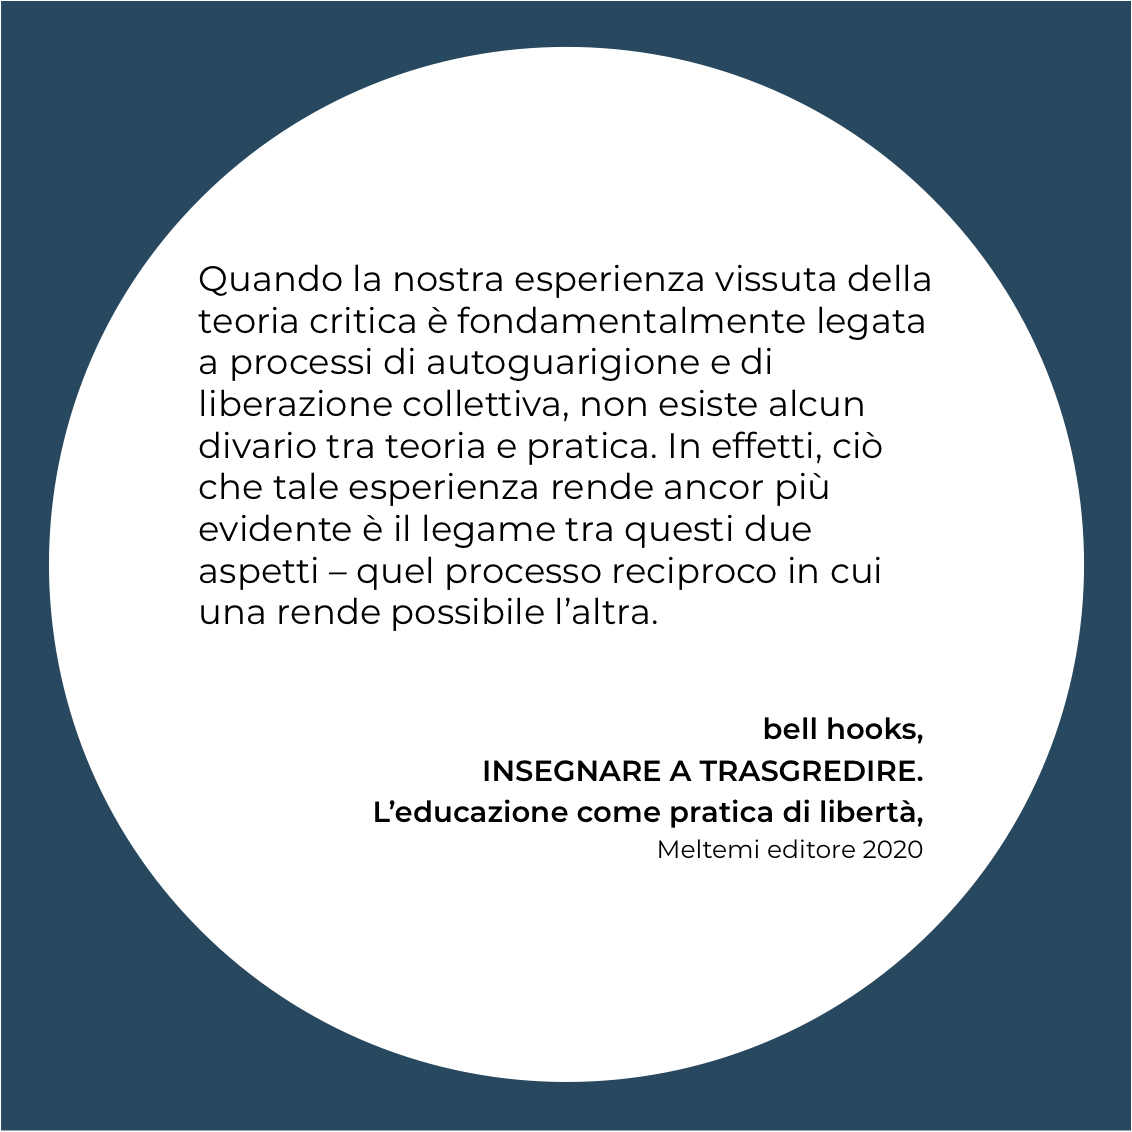 insegnare a trasgredire bell hooks